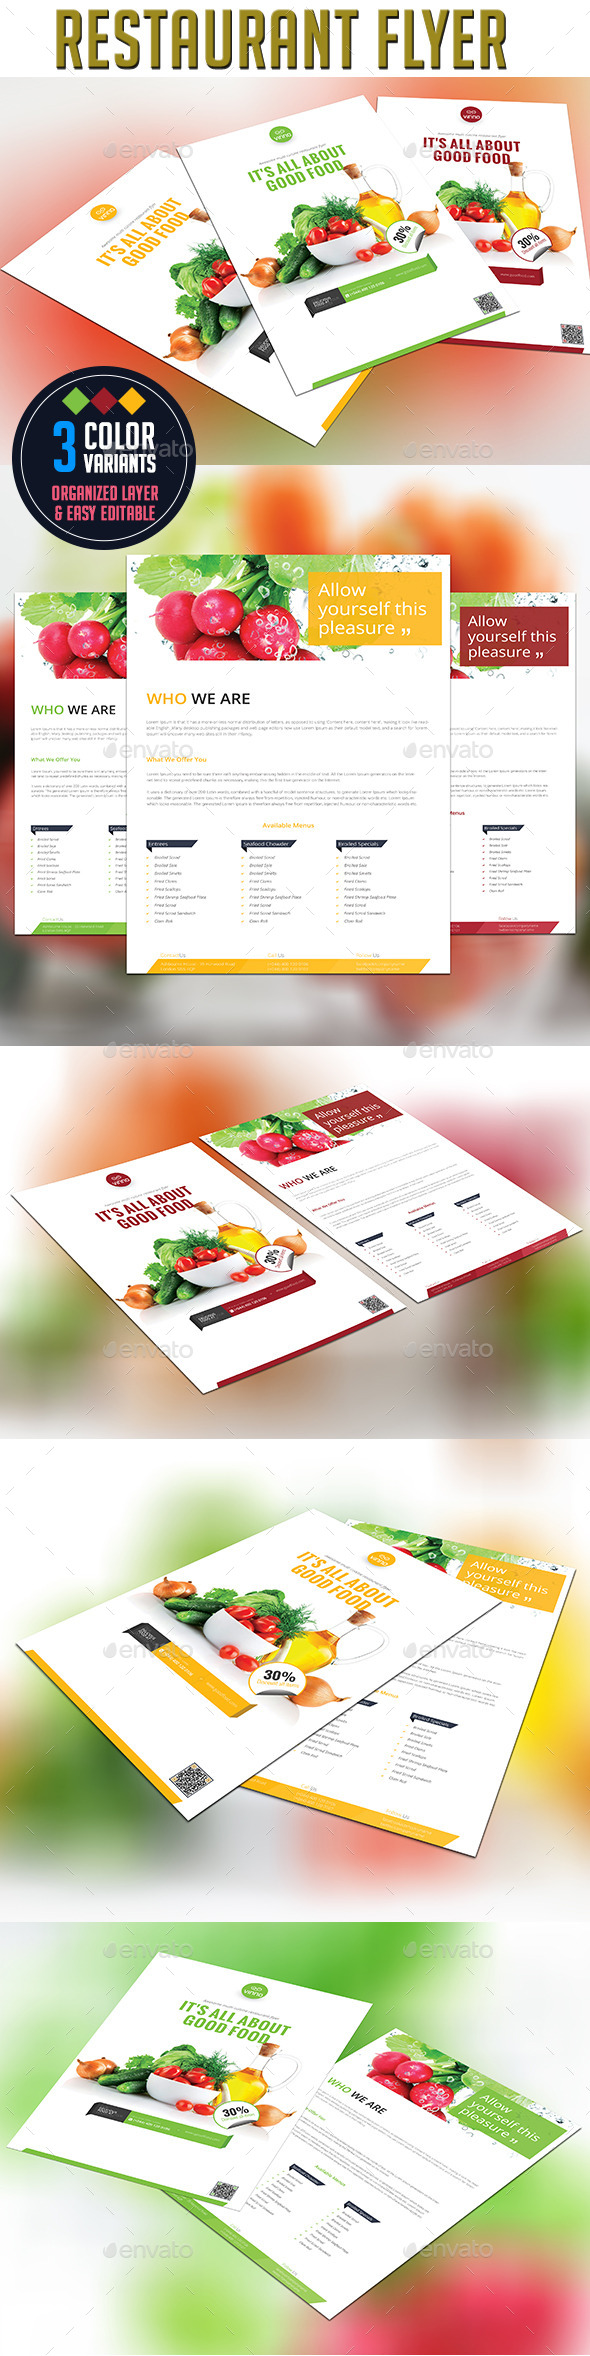 GraphicRiver Restaurant Flyer 9596946